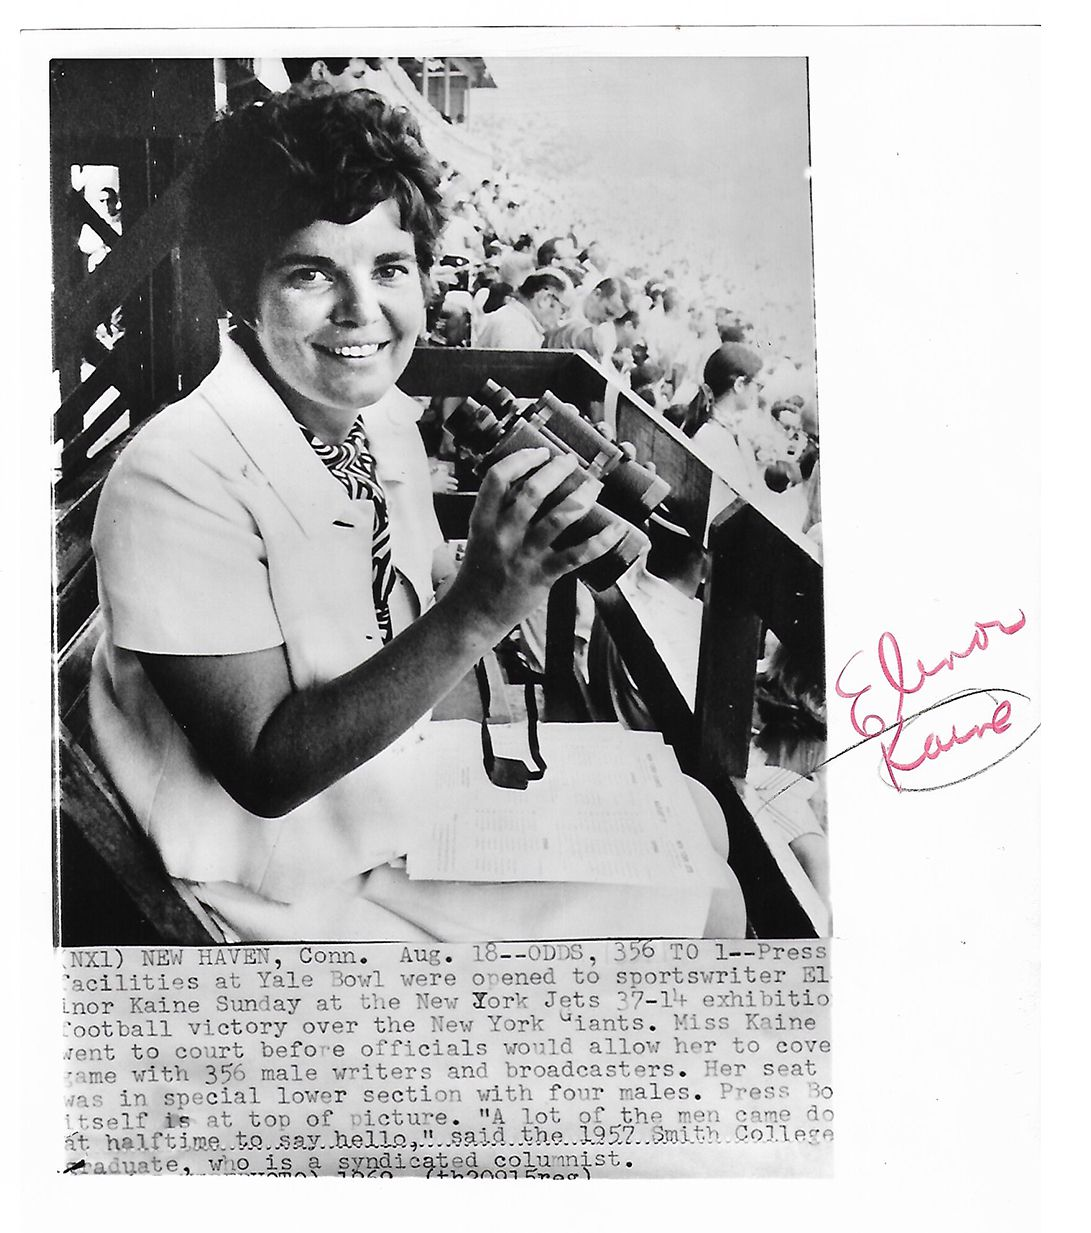 photo clipping of Elinor holding binoculars at a game